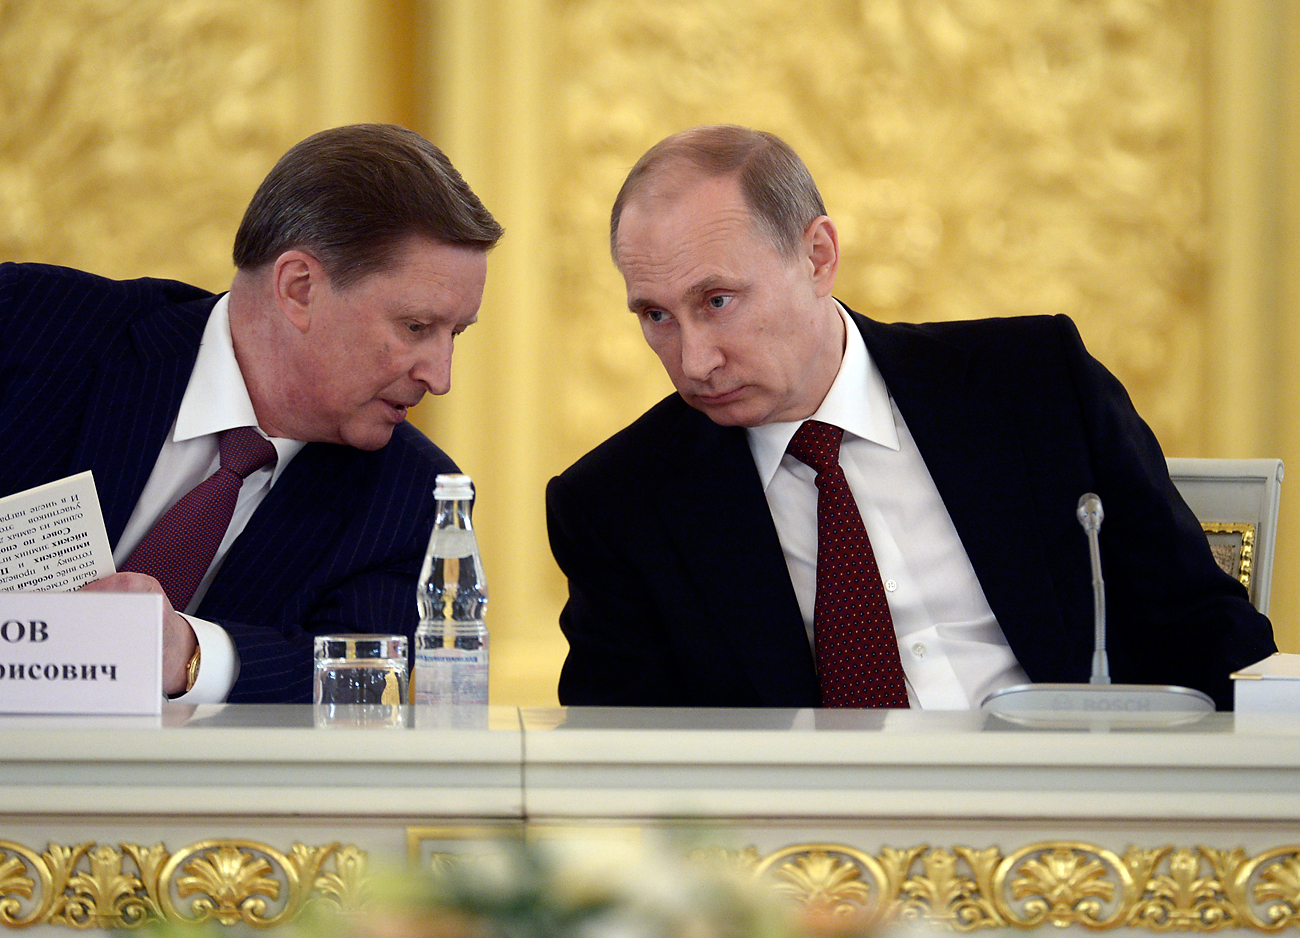 Russian President Vladimir Putin speaks with Sergei Ivanov, head of the presidential administration, during a government meeting in Moscow's Kremlin on March 24, 2014.